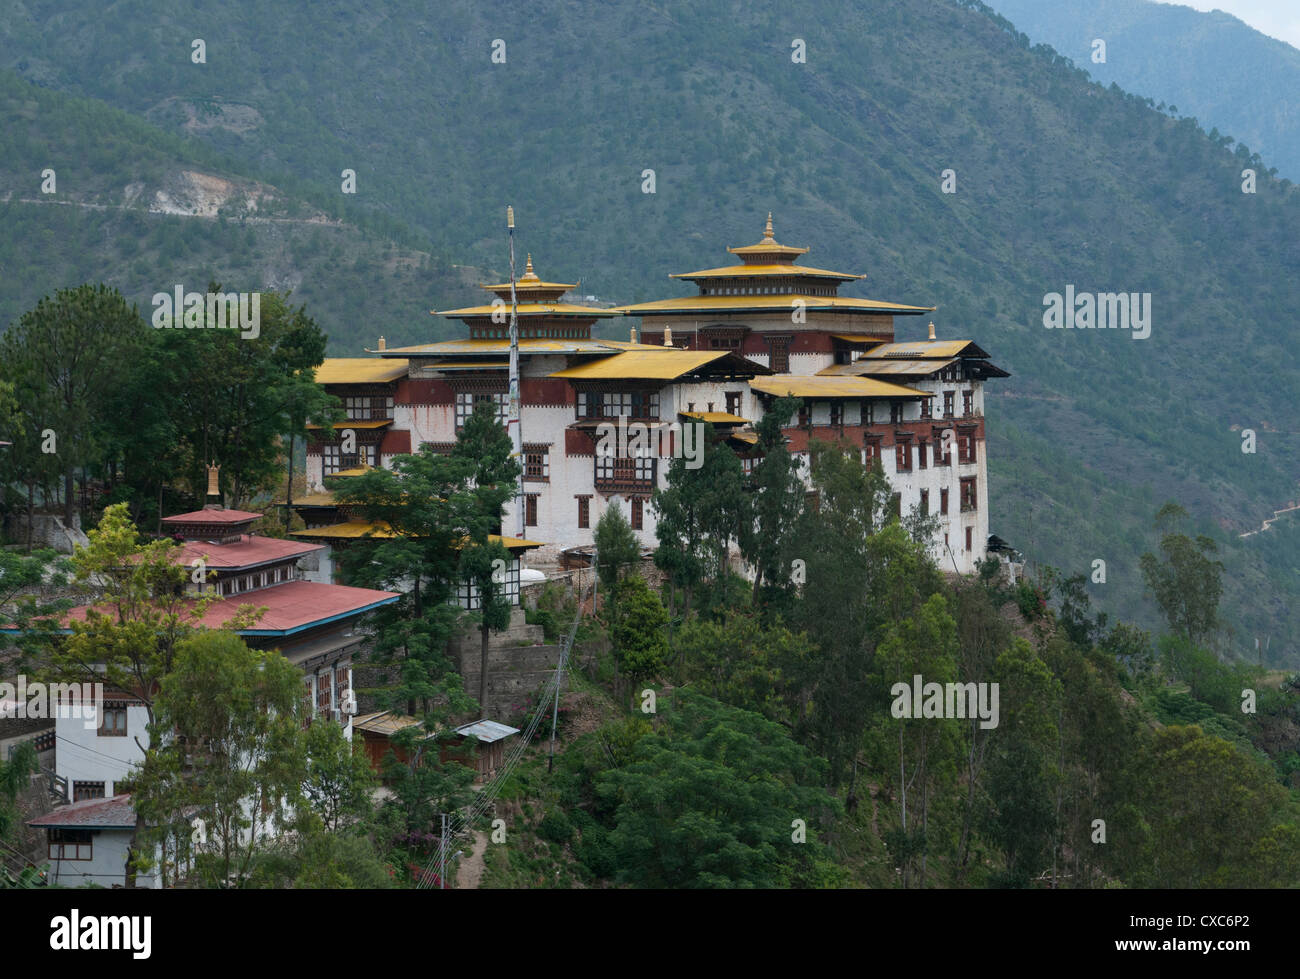 View of the Dzong in Trashigang with hills in the background, Eastern Bhutan, Bhutan, Asia - Stock Image